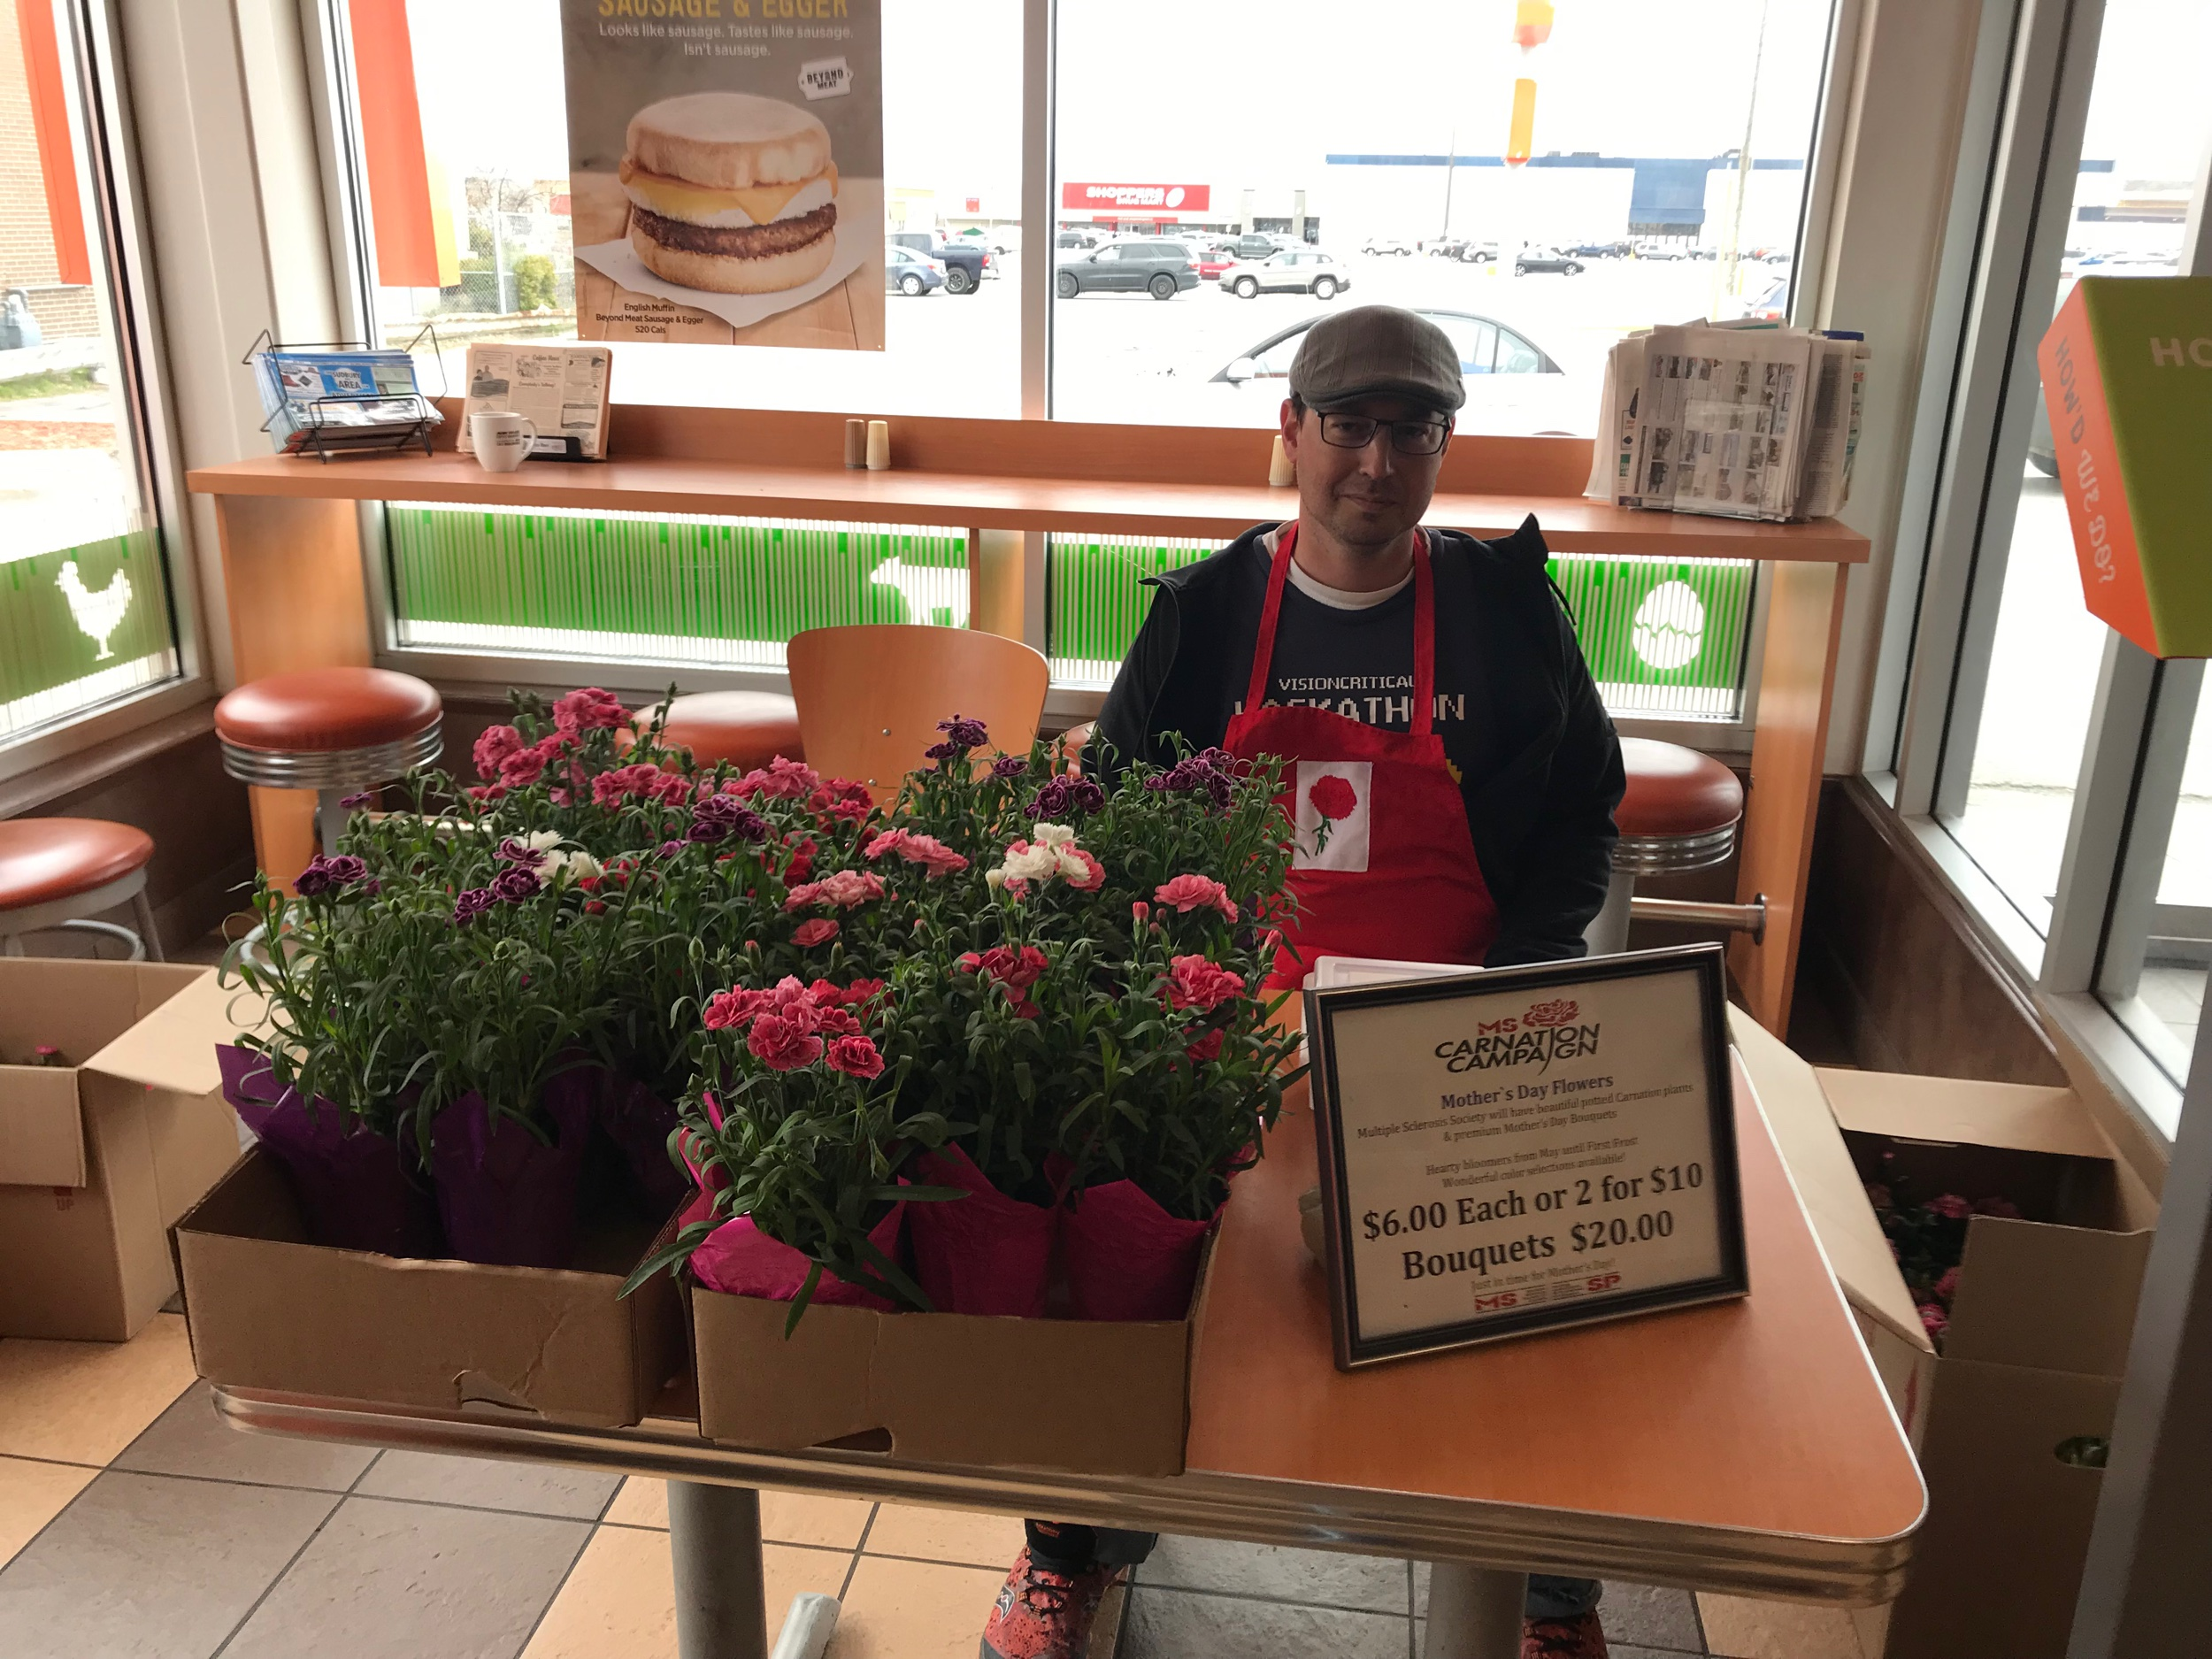 Carnations for Mother's Day sales to raise funds for the MS Society.